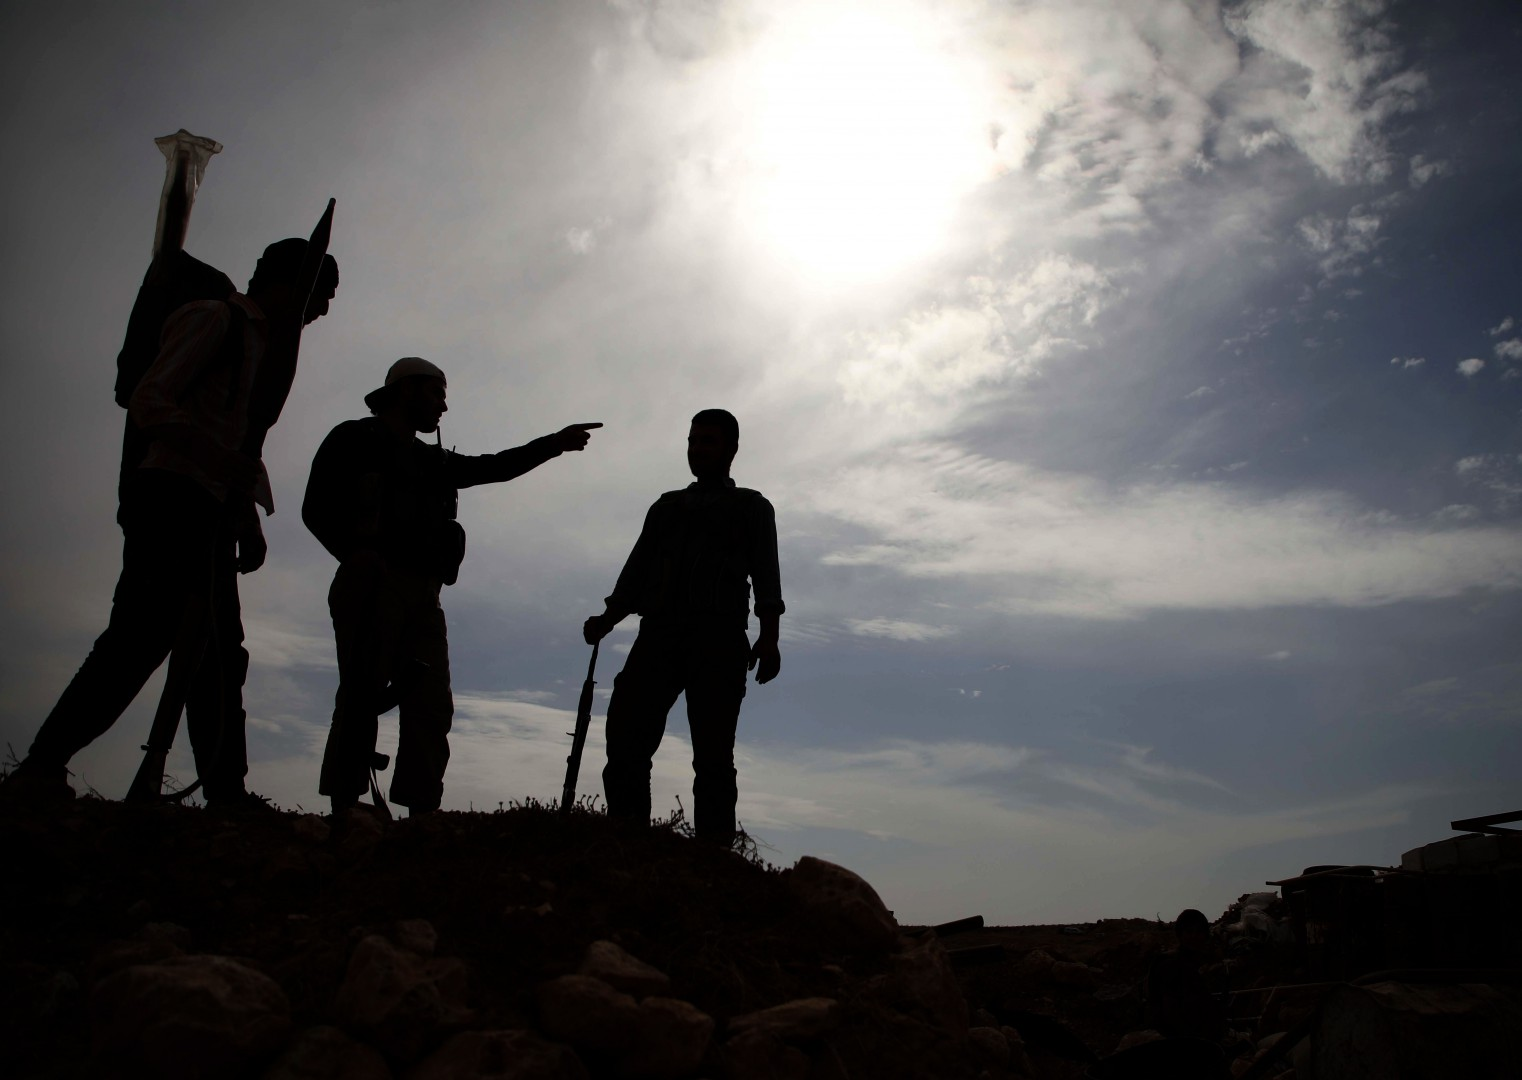 TOPSHOT - Syrian rebel-fighters with the National Liberation Front (NLF) stand on a hill overlooking regime-held areas in northwestern countryside of Aleppo province on October 9, 2018. - Jihadists and Turkish-backed rebels in Syria's last major opposition stronghold have withdrawn heavy weapons from nearly all of a planned buffer zone, a monitor said today, a day ahead of deadline. (Photo by Aaref WATAD / AFP)